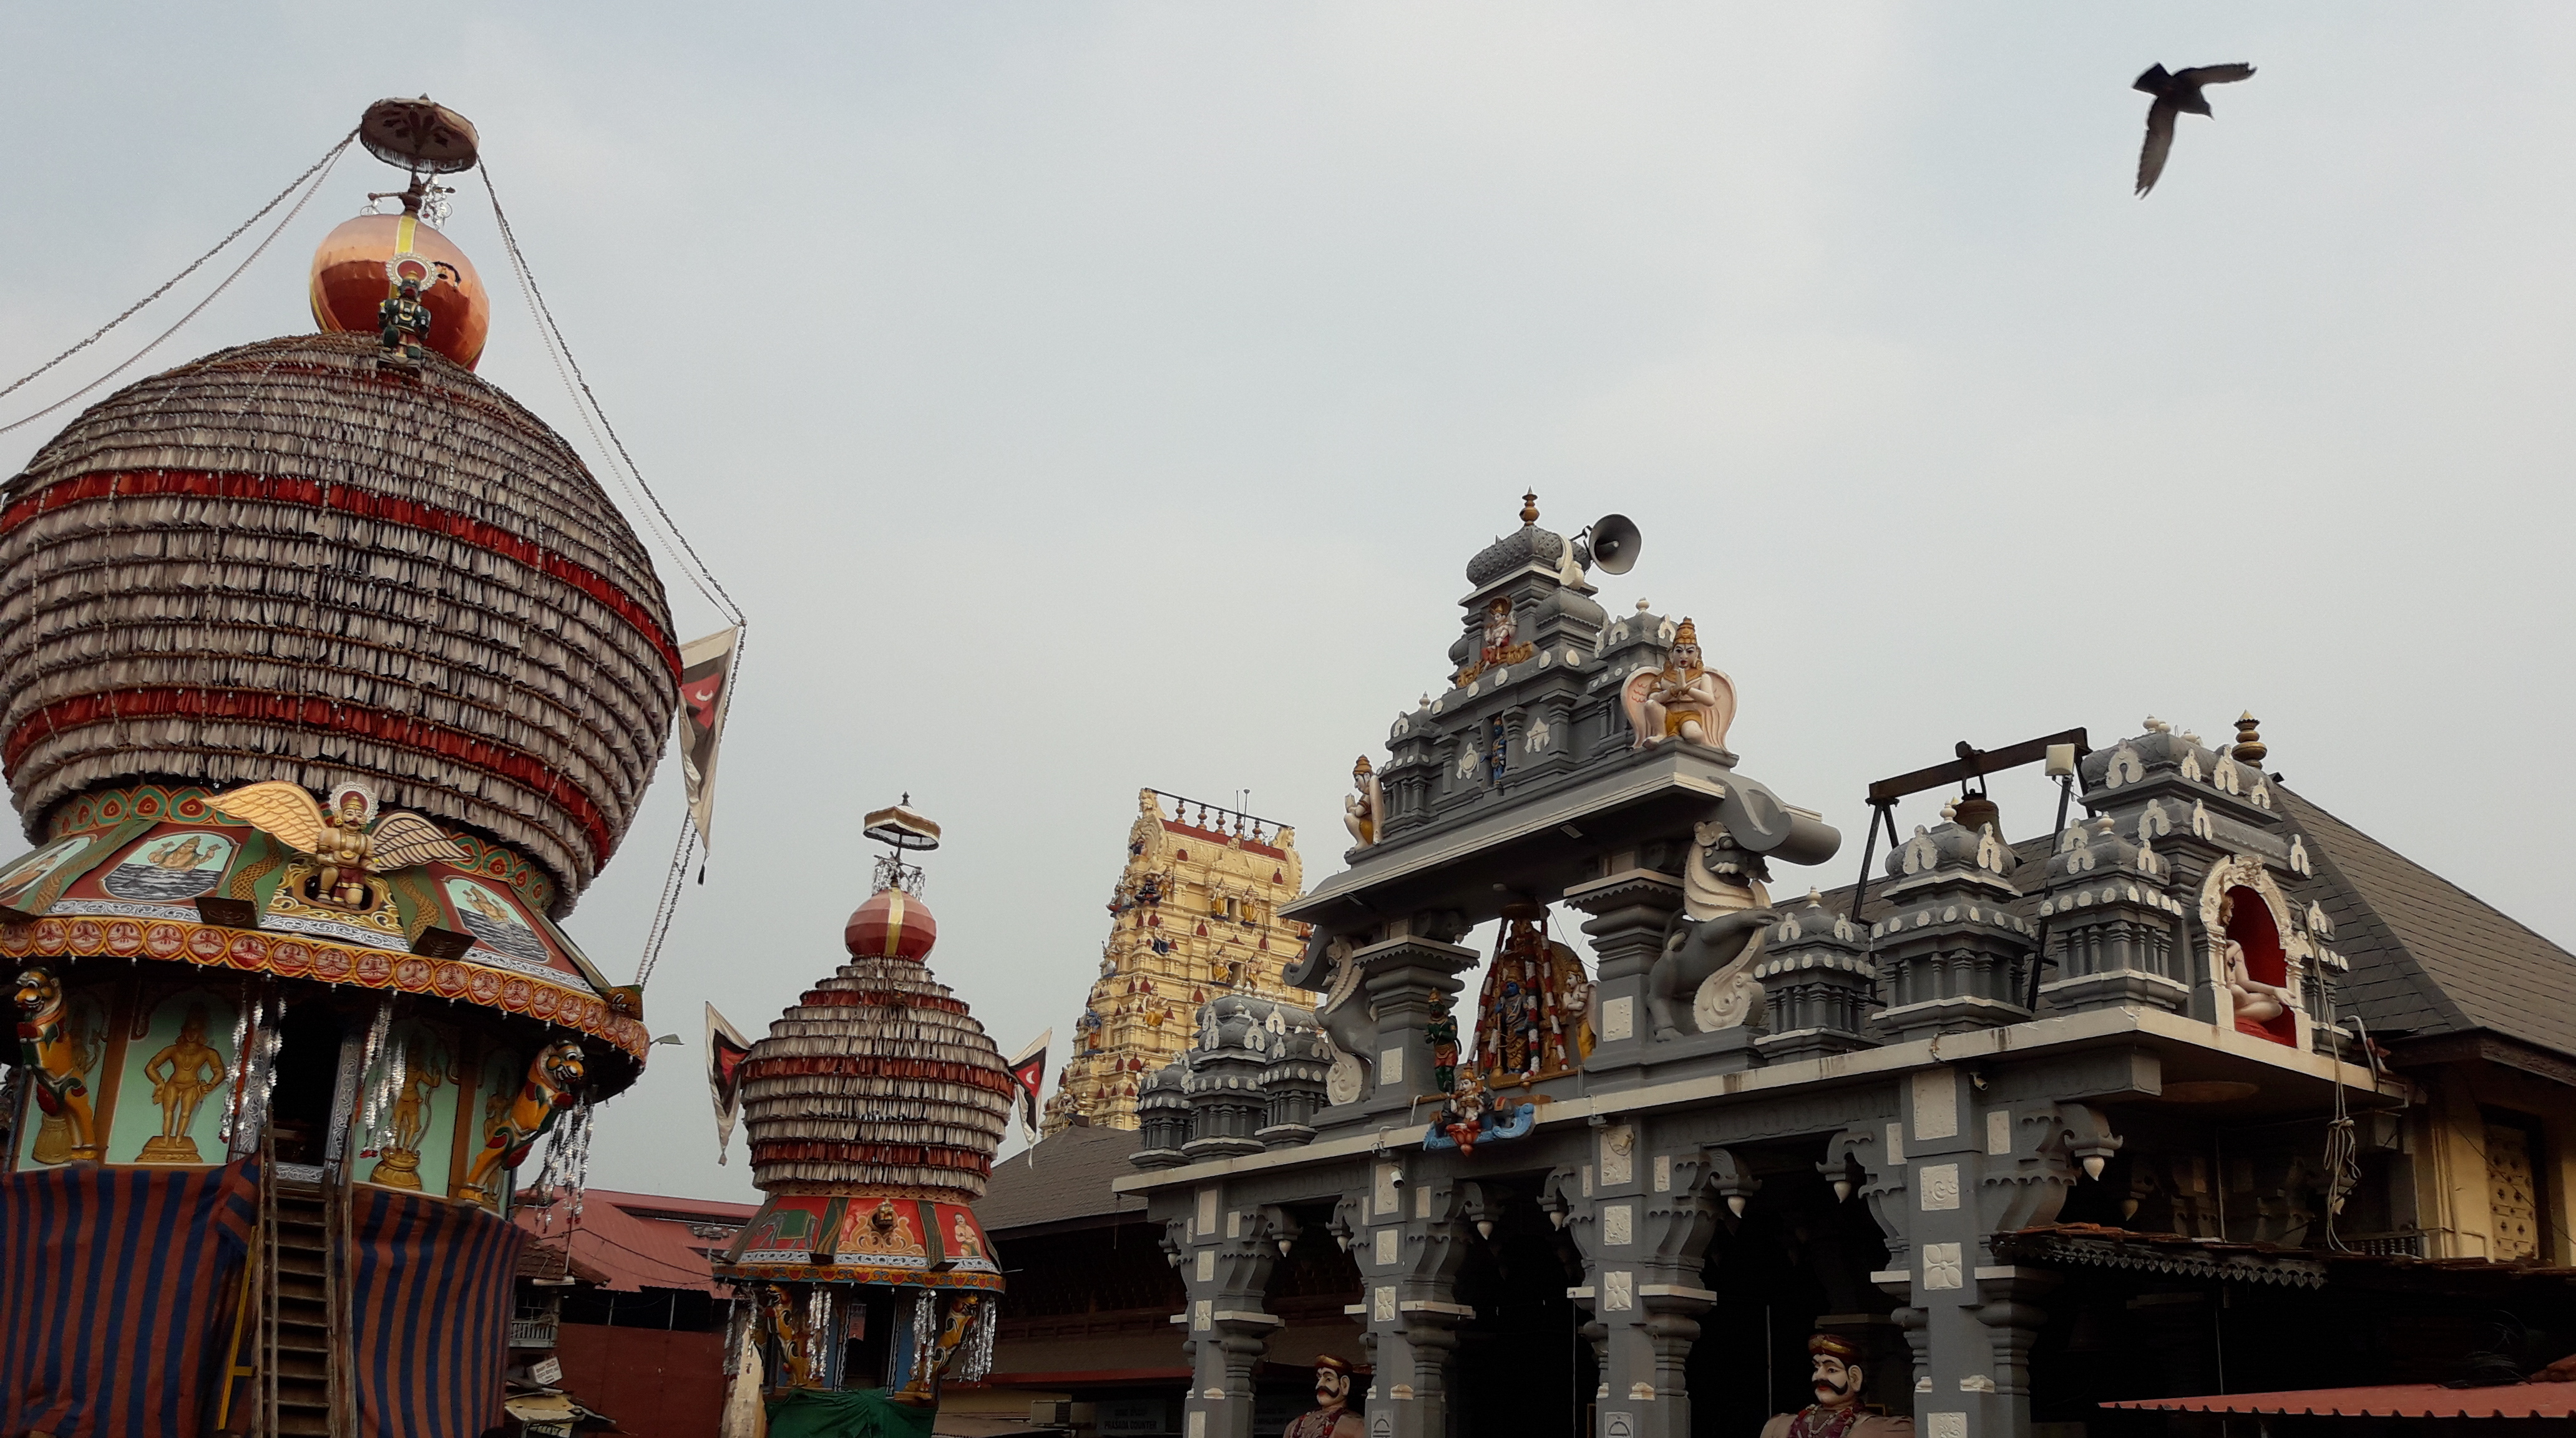 Udupi - rath (chariot) and temple